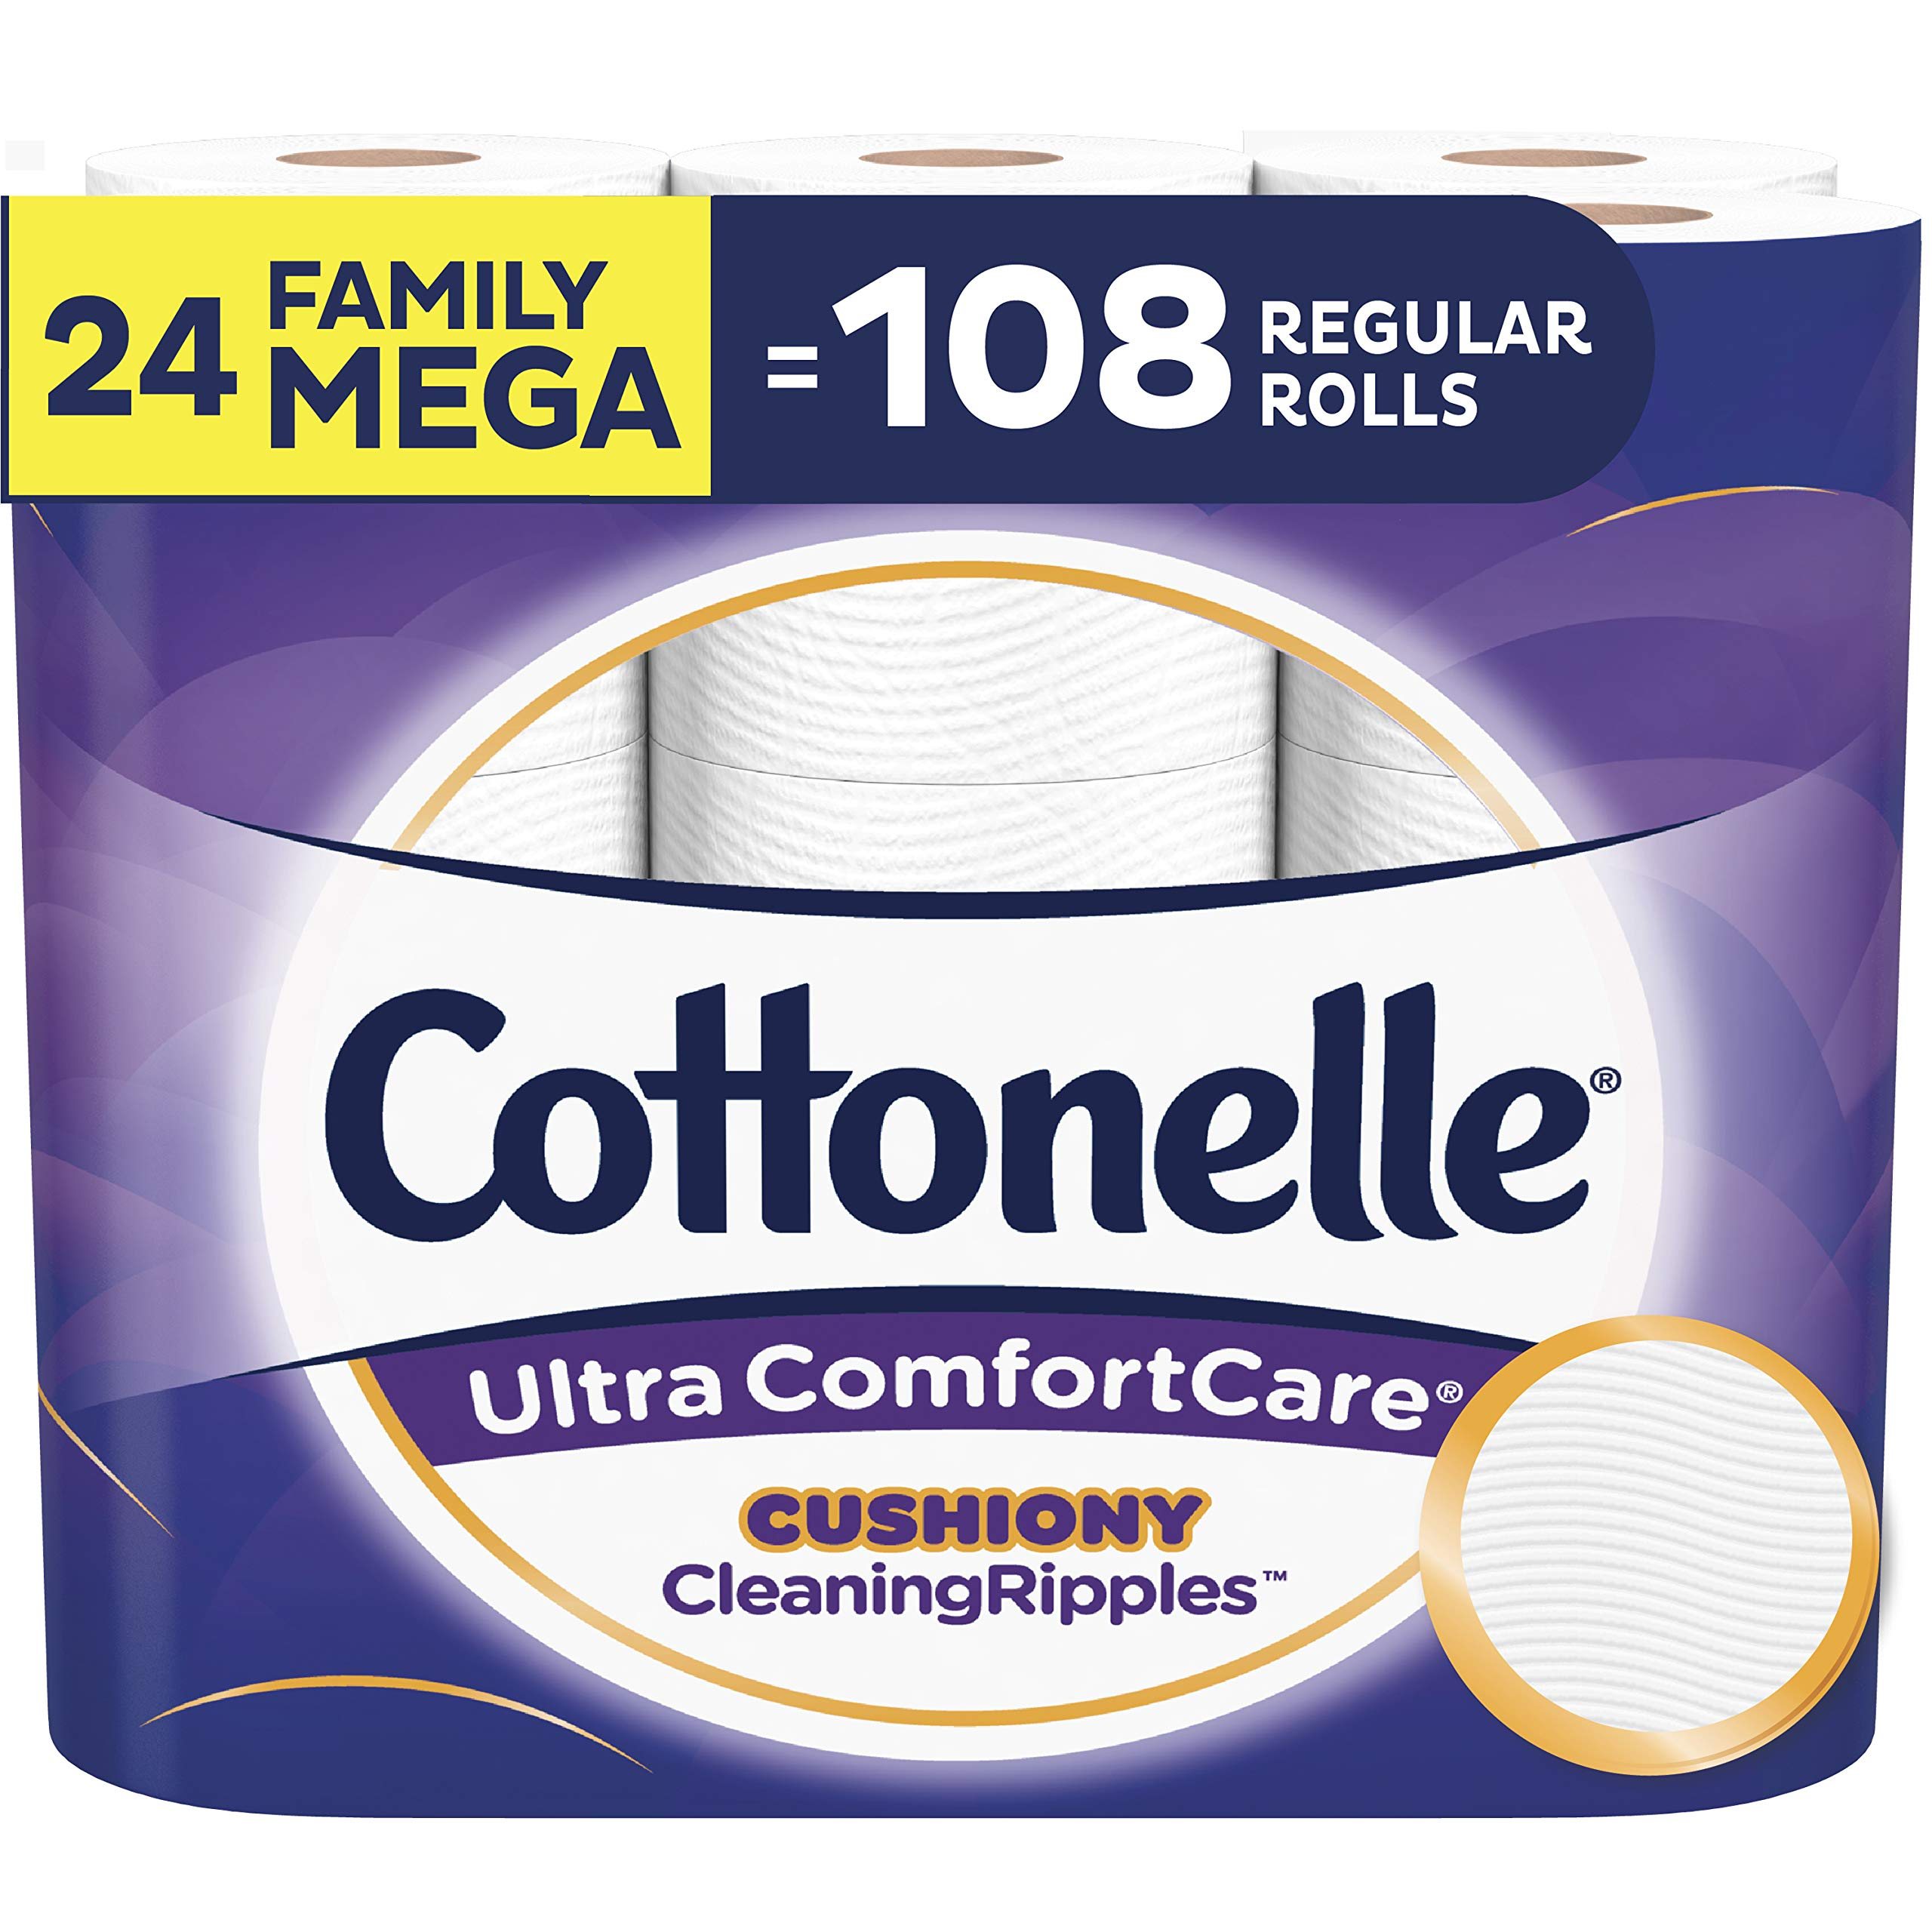 Cottonelle Ultra ComfortCare Toilet Paper with Cushiony CleaningRipples, Soft Biodegradable Bath Tissue, Septic-Safe, Family Mega Rolls, 24 Count by Cottonelle